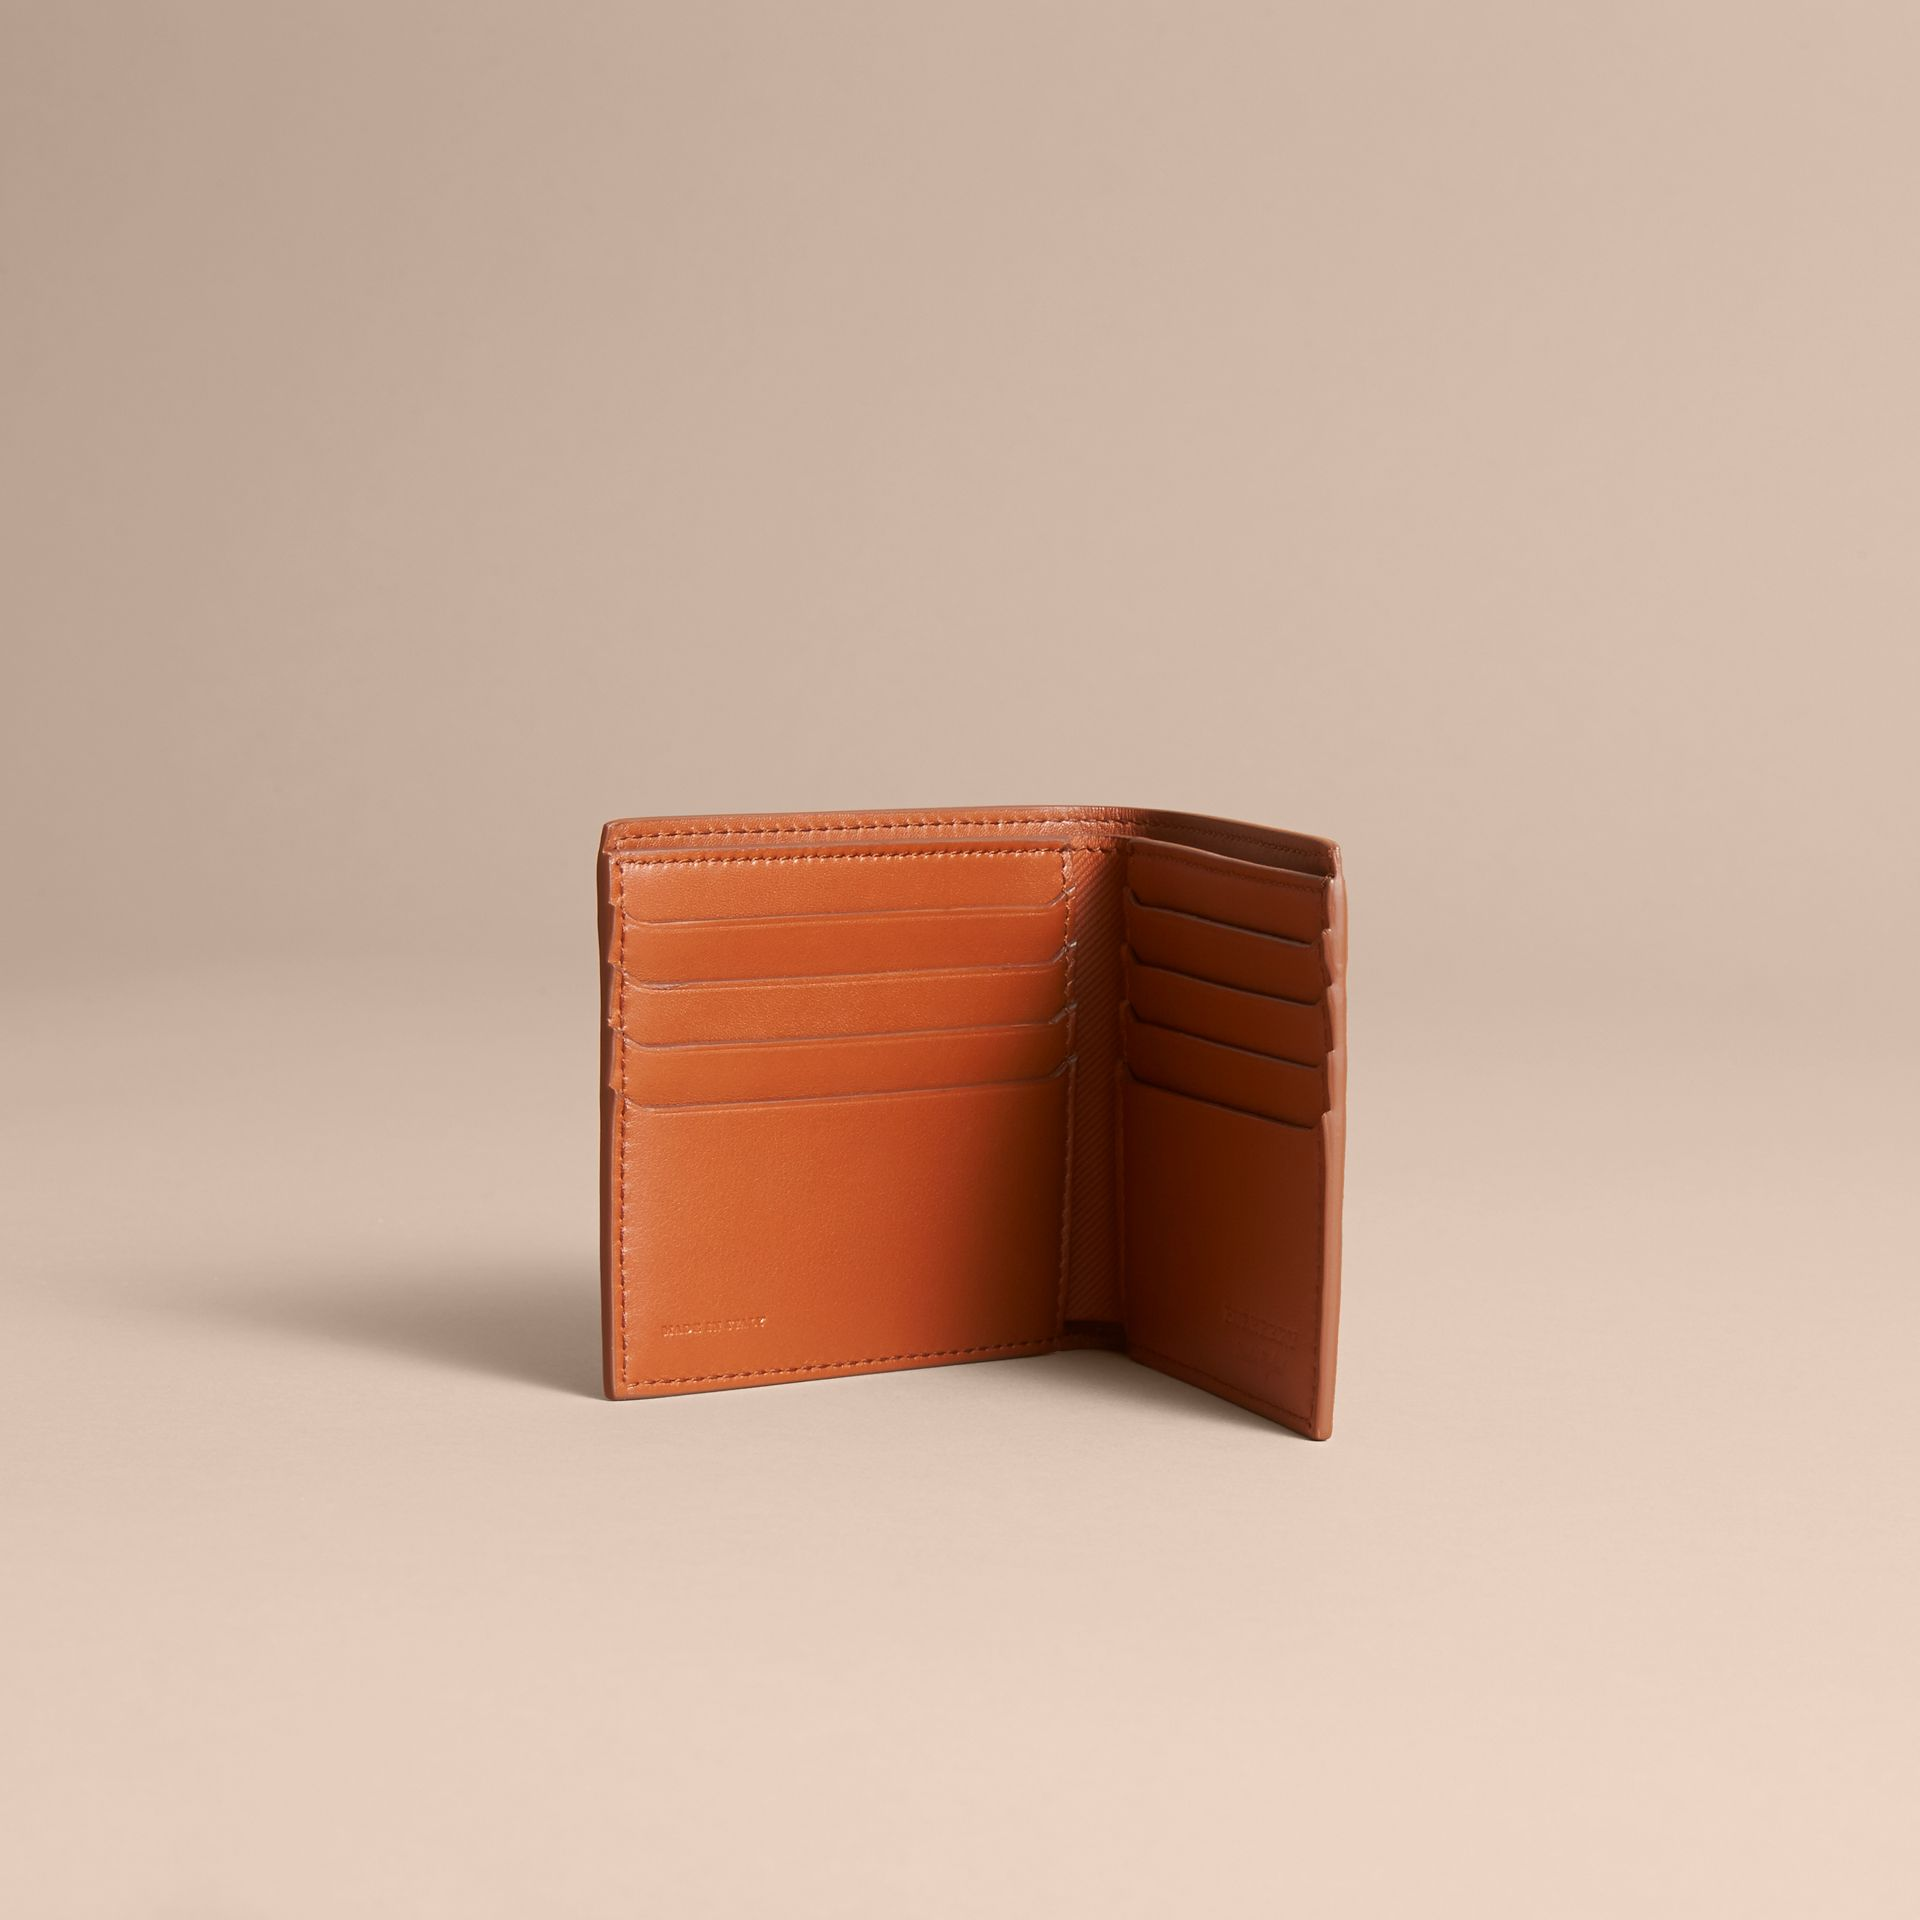 Trench Leather International Bifold Wallet in Tan - Men | Burberry Australia - gallery image 5